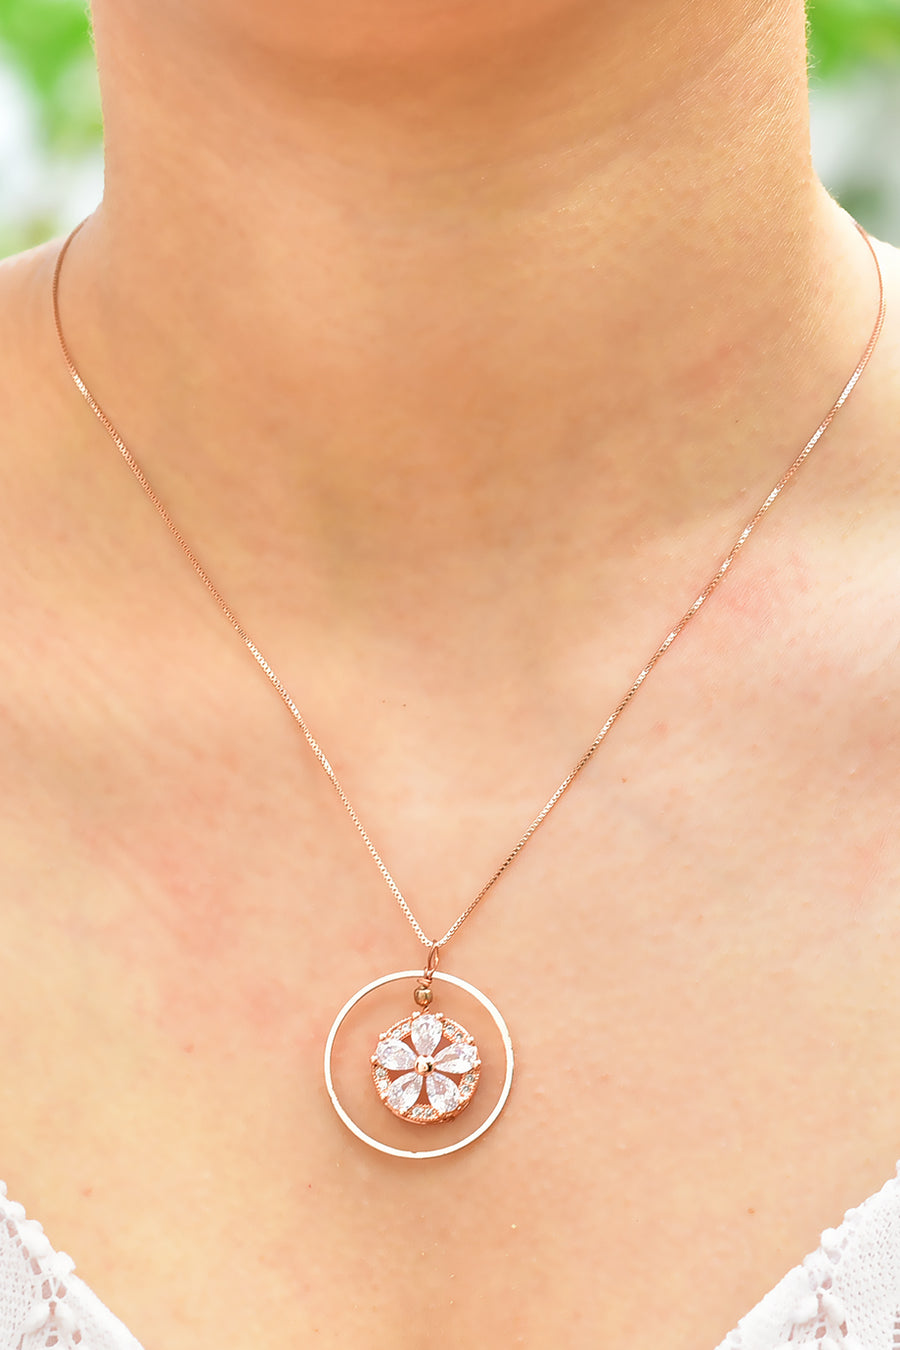 Embedded Flower Pendant Necklace Rose Gold Lifestyle